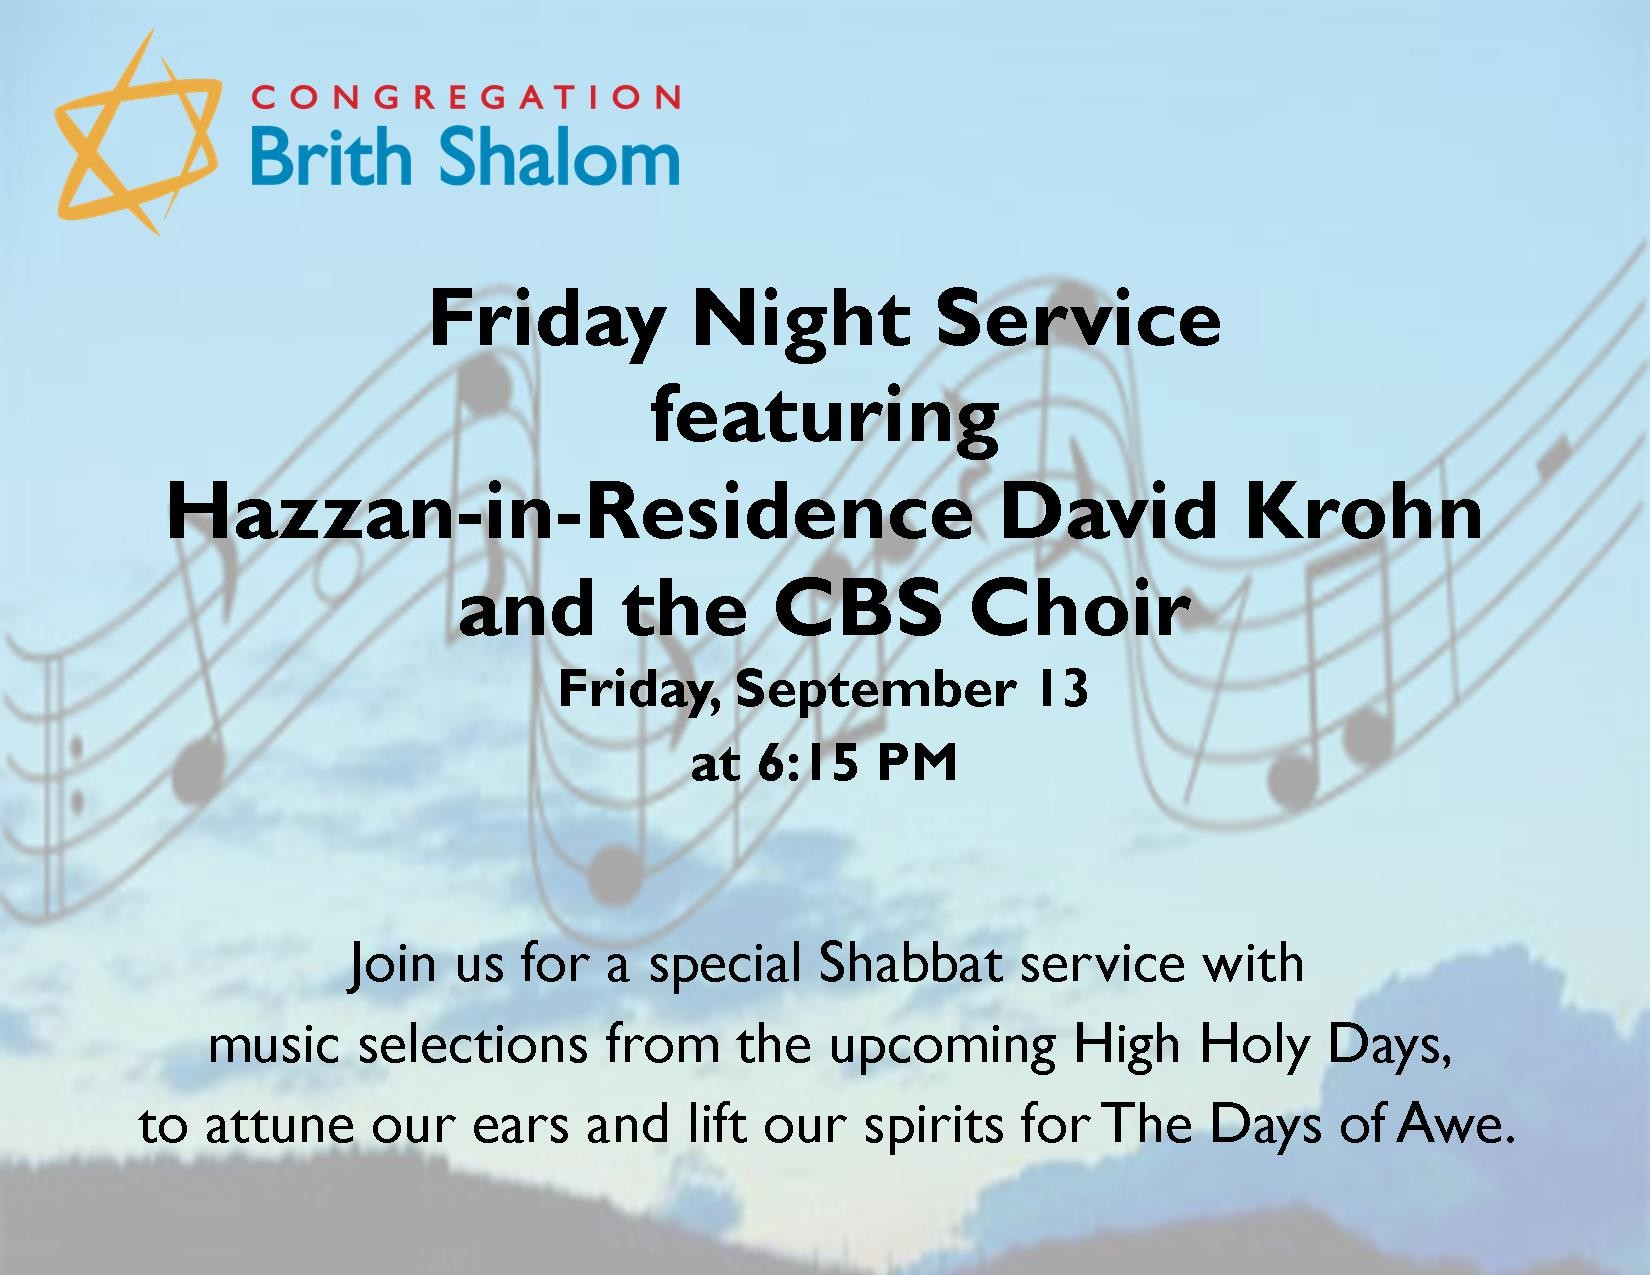 Banner Image for Friday Night Service featuring the CBS Choir